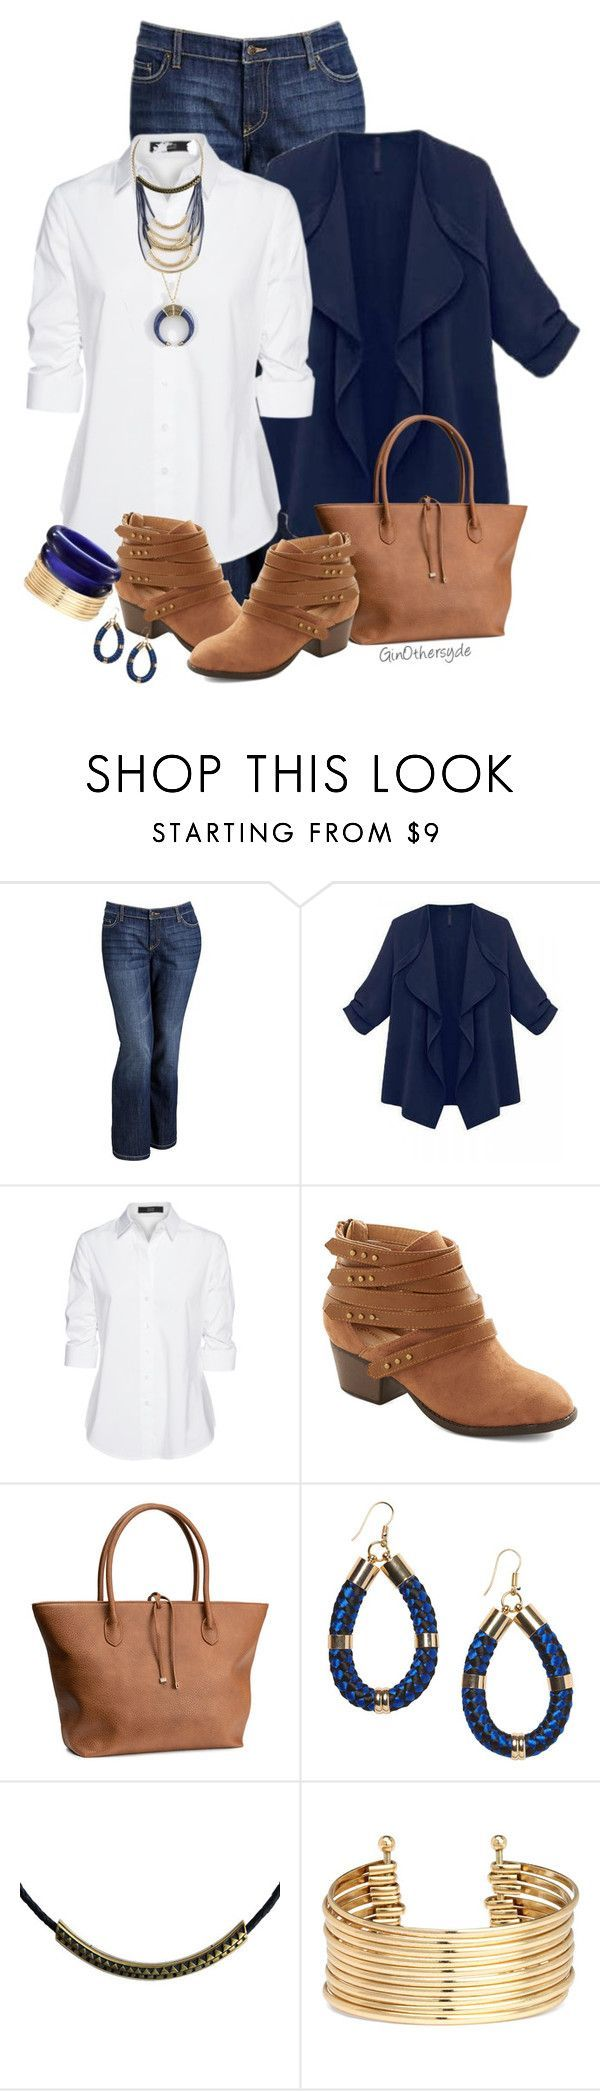 Best cute clothes images on pinterest my style piko dress